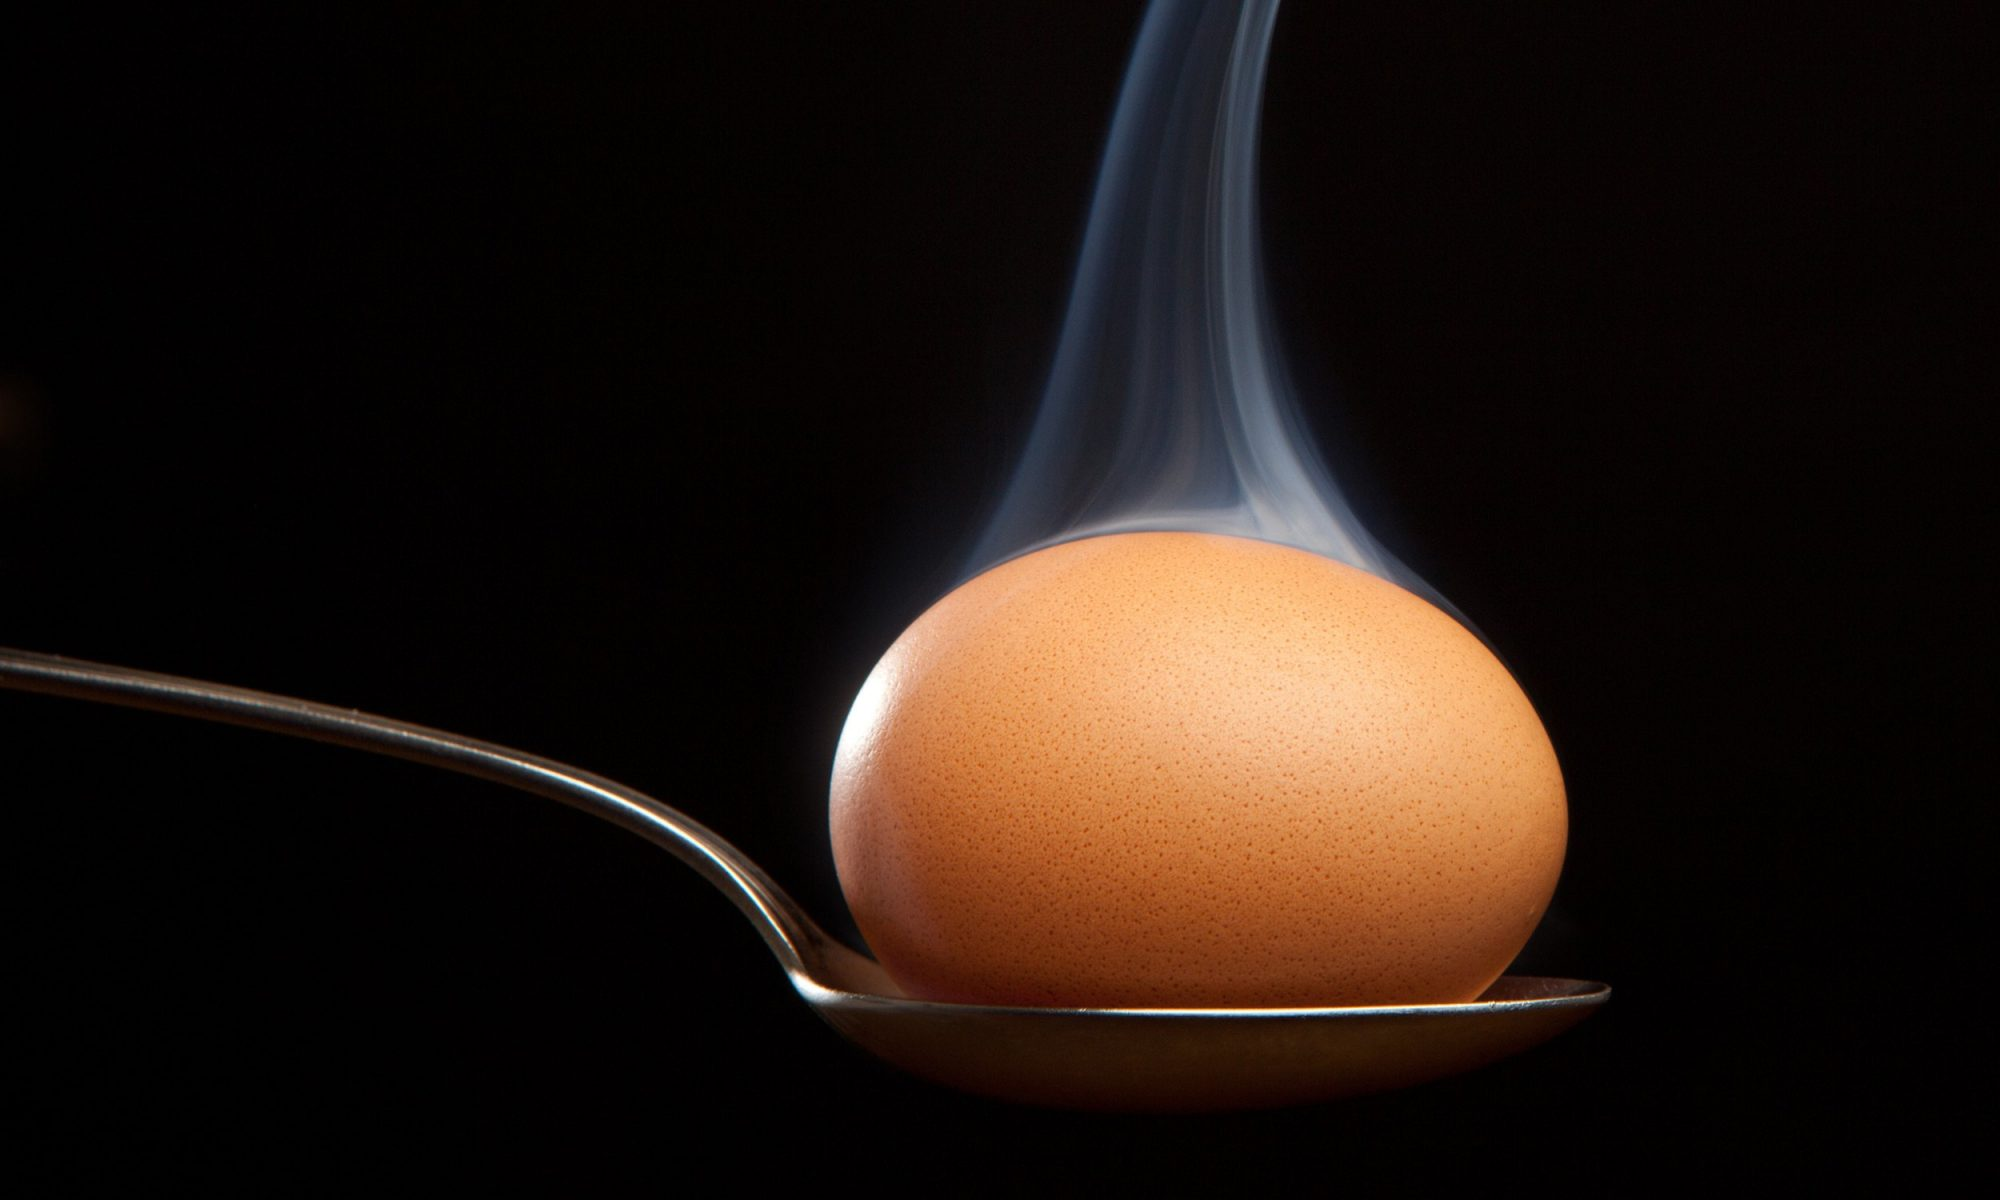 egg in a spoon